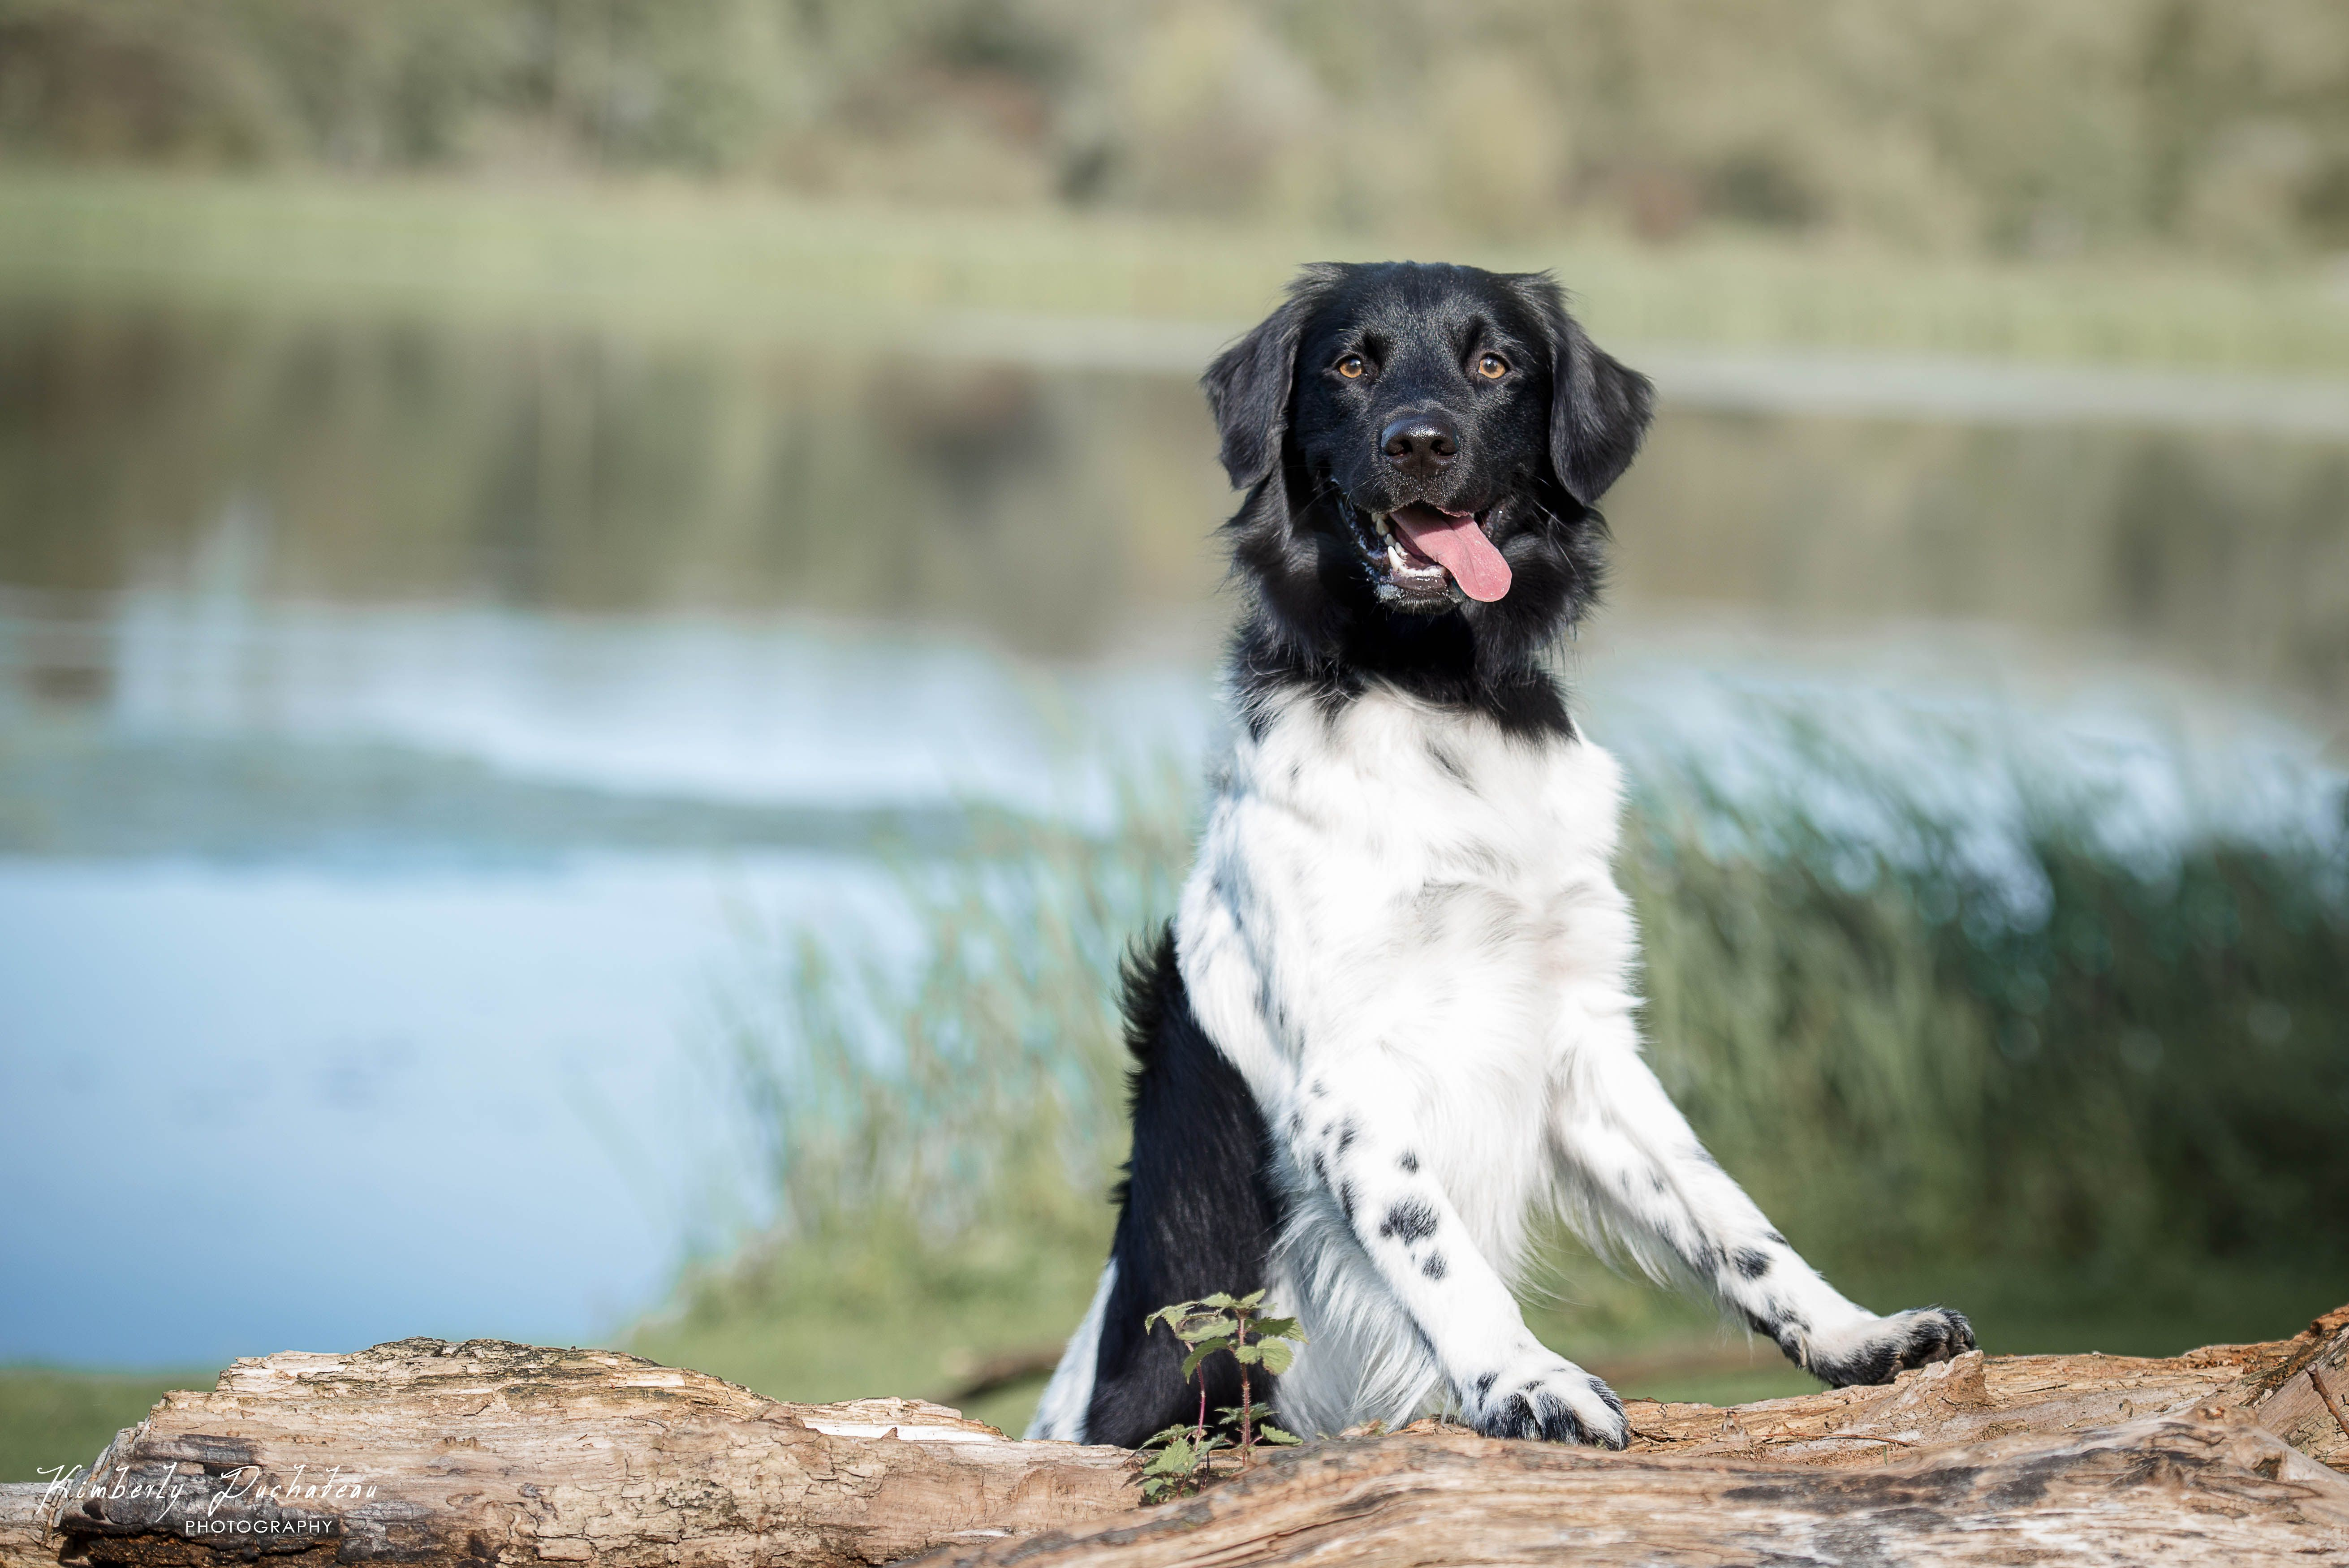 honden , dog , dogs , photography , puppy's , Nikon , fotografie , 70-200 MM lens , Kimberly Duchateau Photography , hondjes , hondenfotografie , Dog-photography , Dog pictures , Dog fotoidee's , Dog photography ideas , Dog photography owner , Professional dog photography , honden fotograaf , hondenfotografie houdingen , Dog photography poses , creative , green , pink , flowerbackground , studio , studio photography dogs